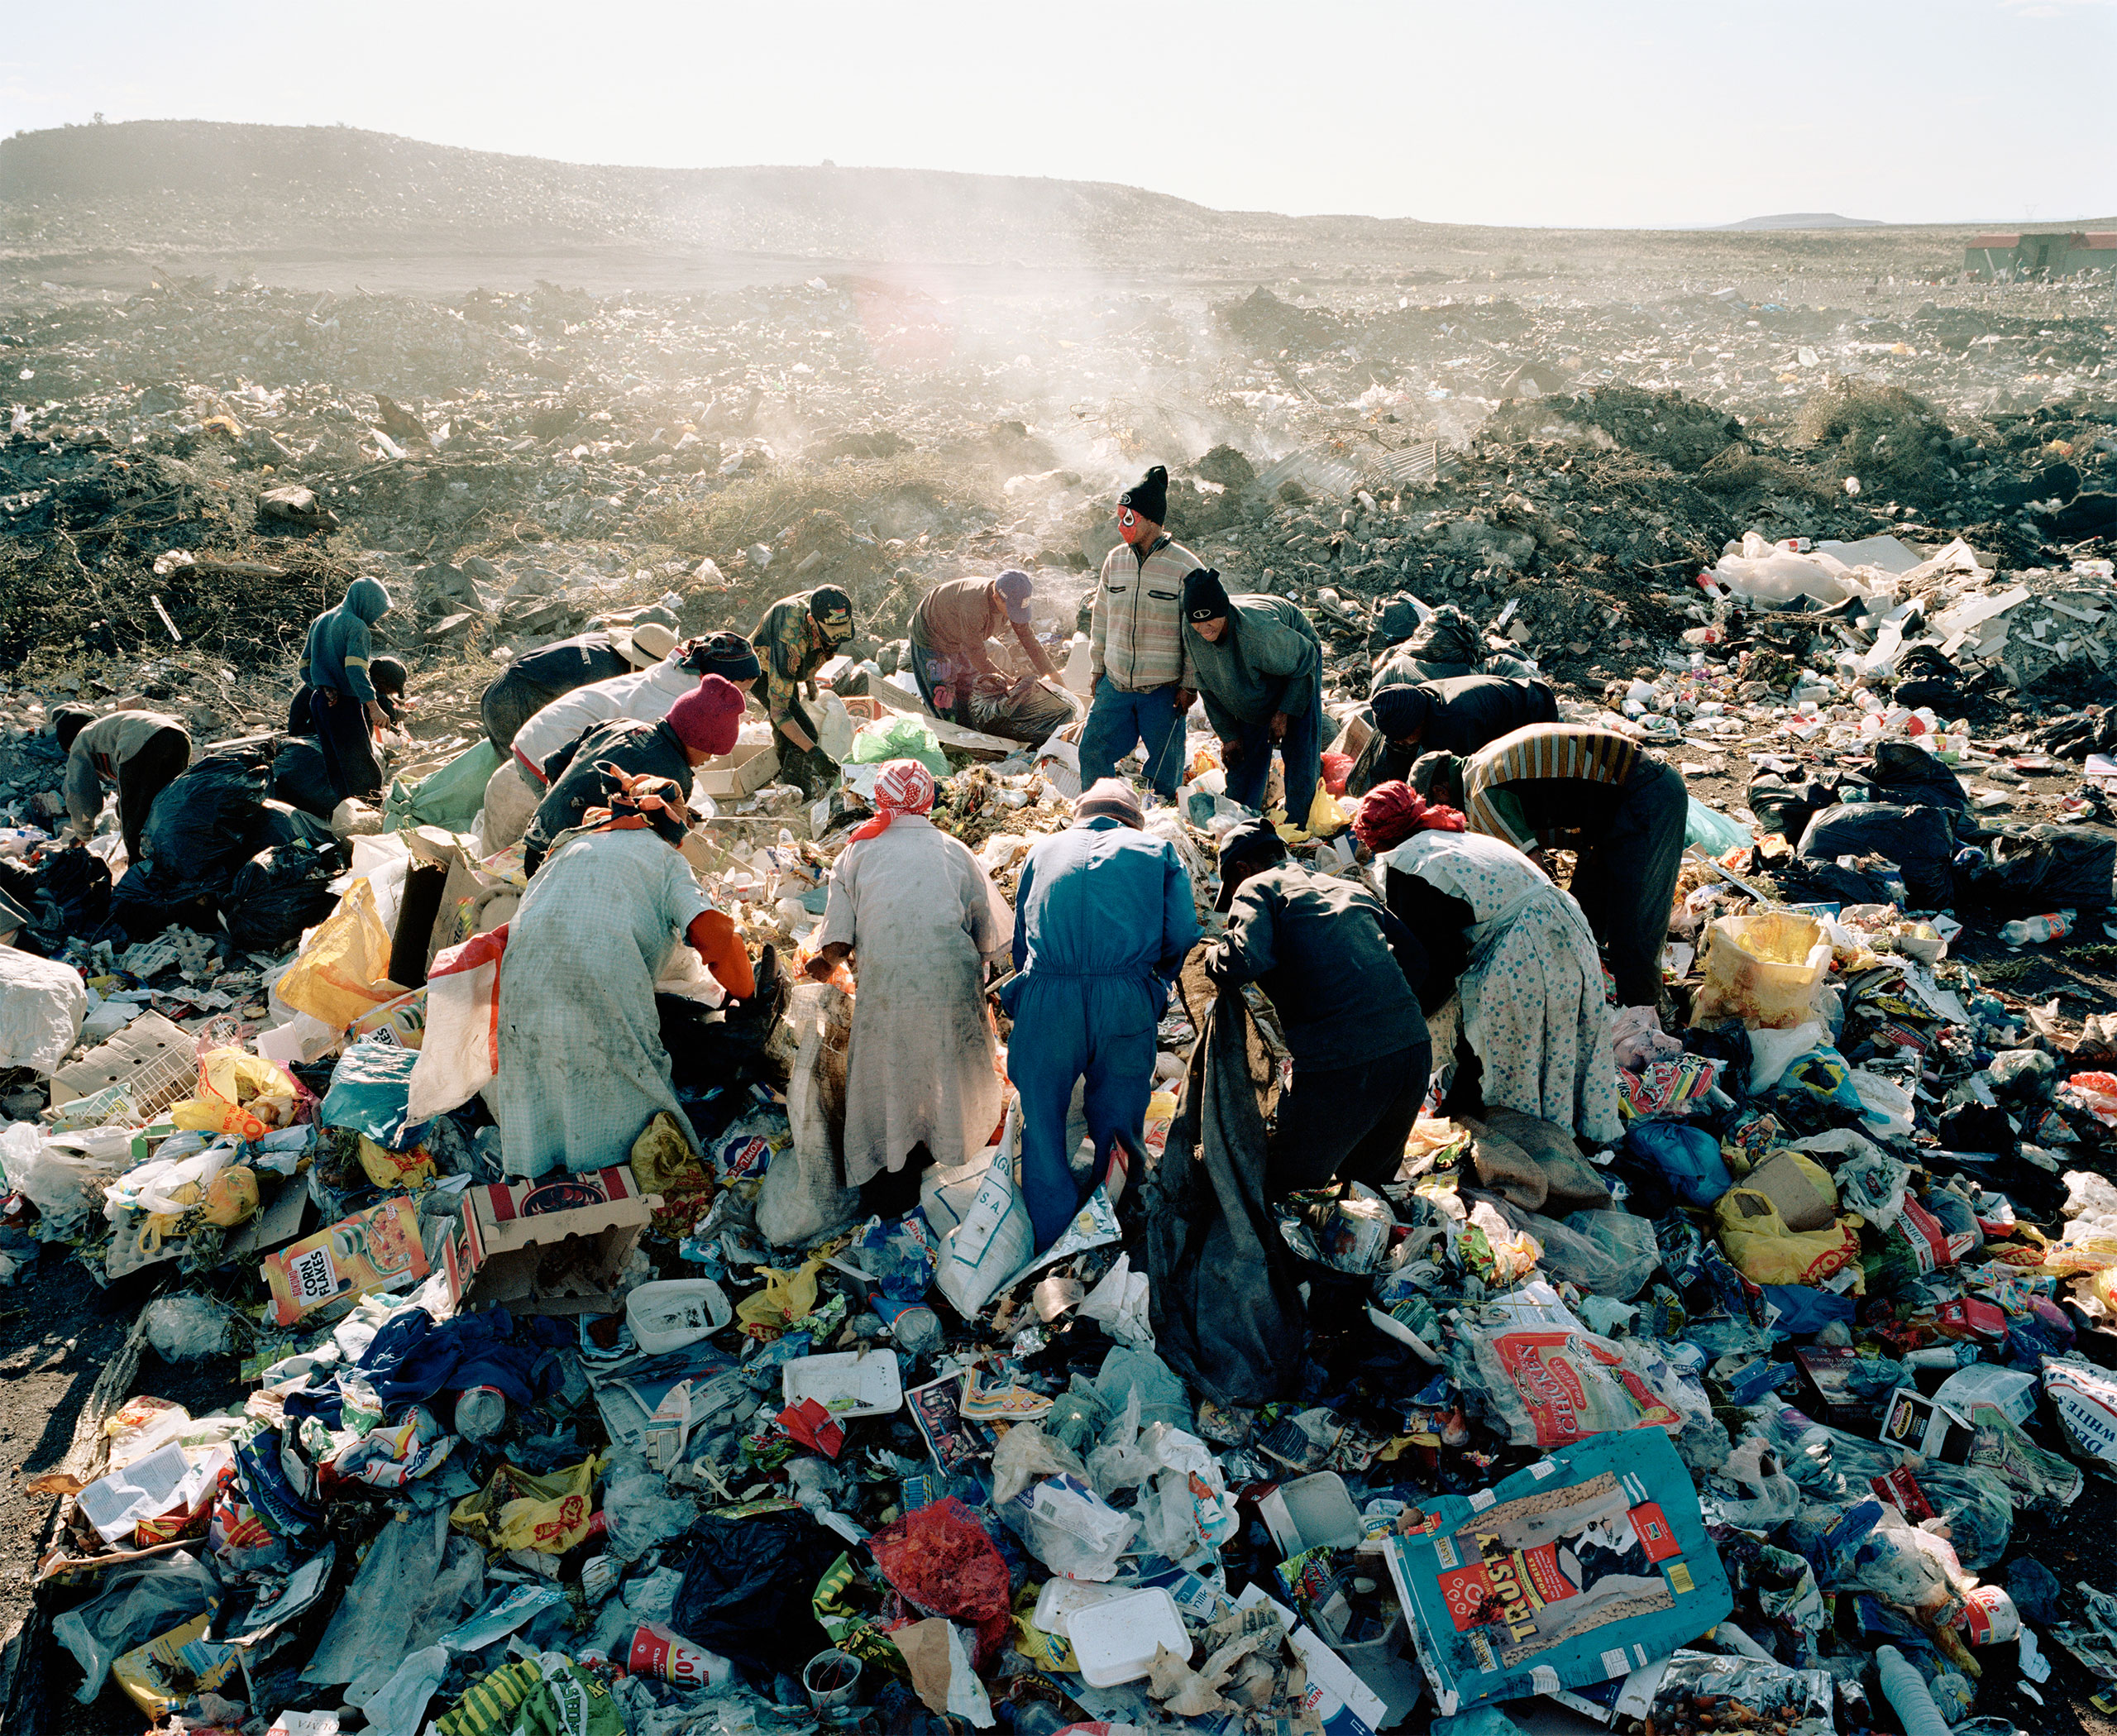 Residents, Vaalkoppies (Beaufort West Rubbish Dump), 2006.